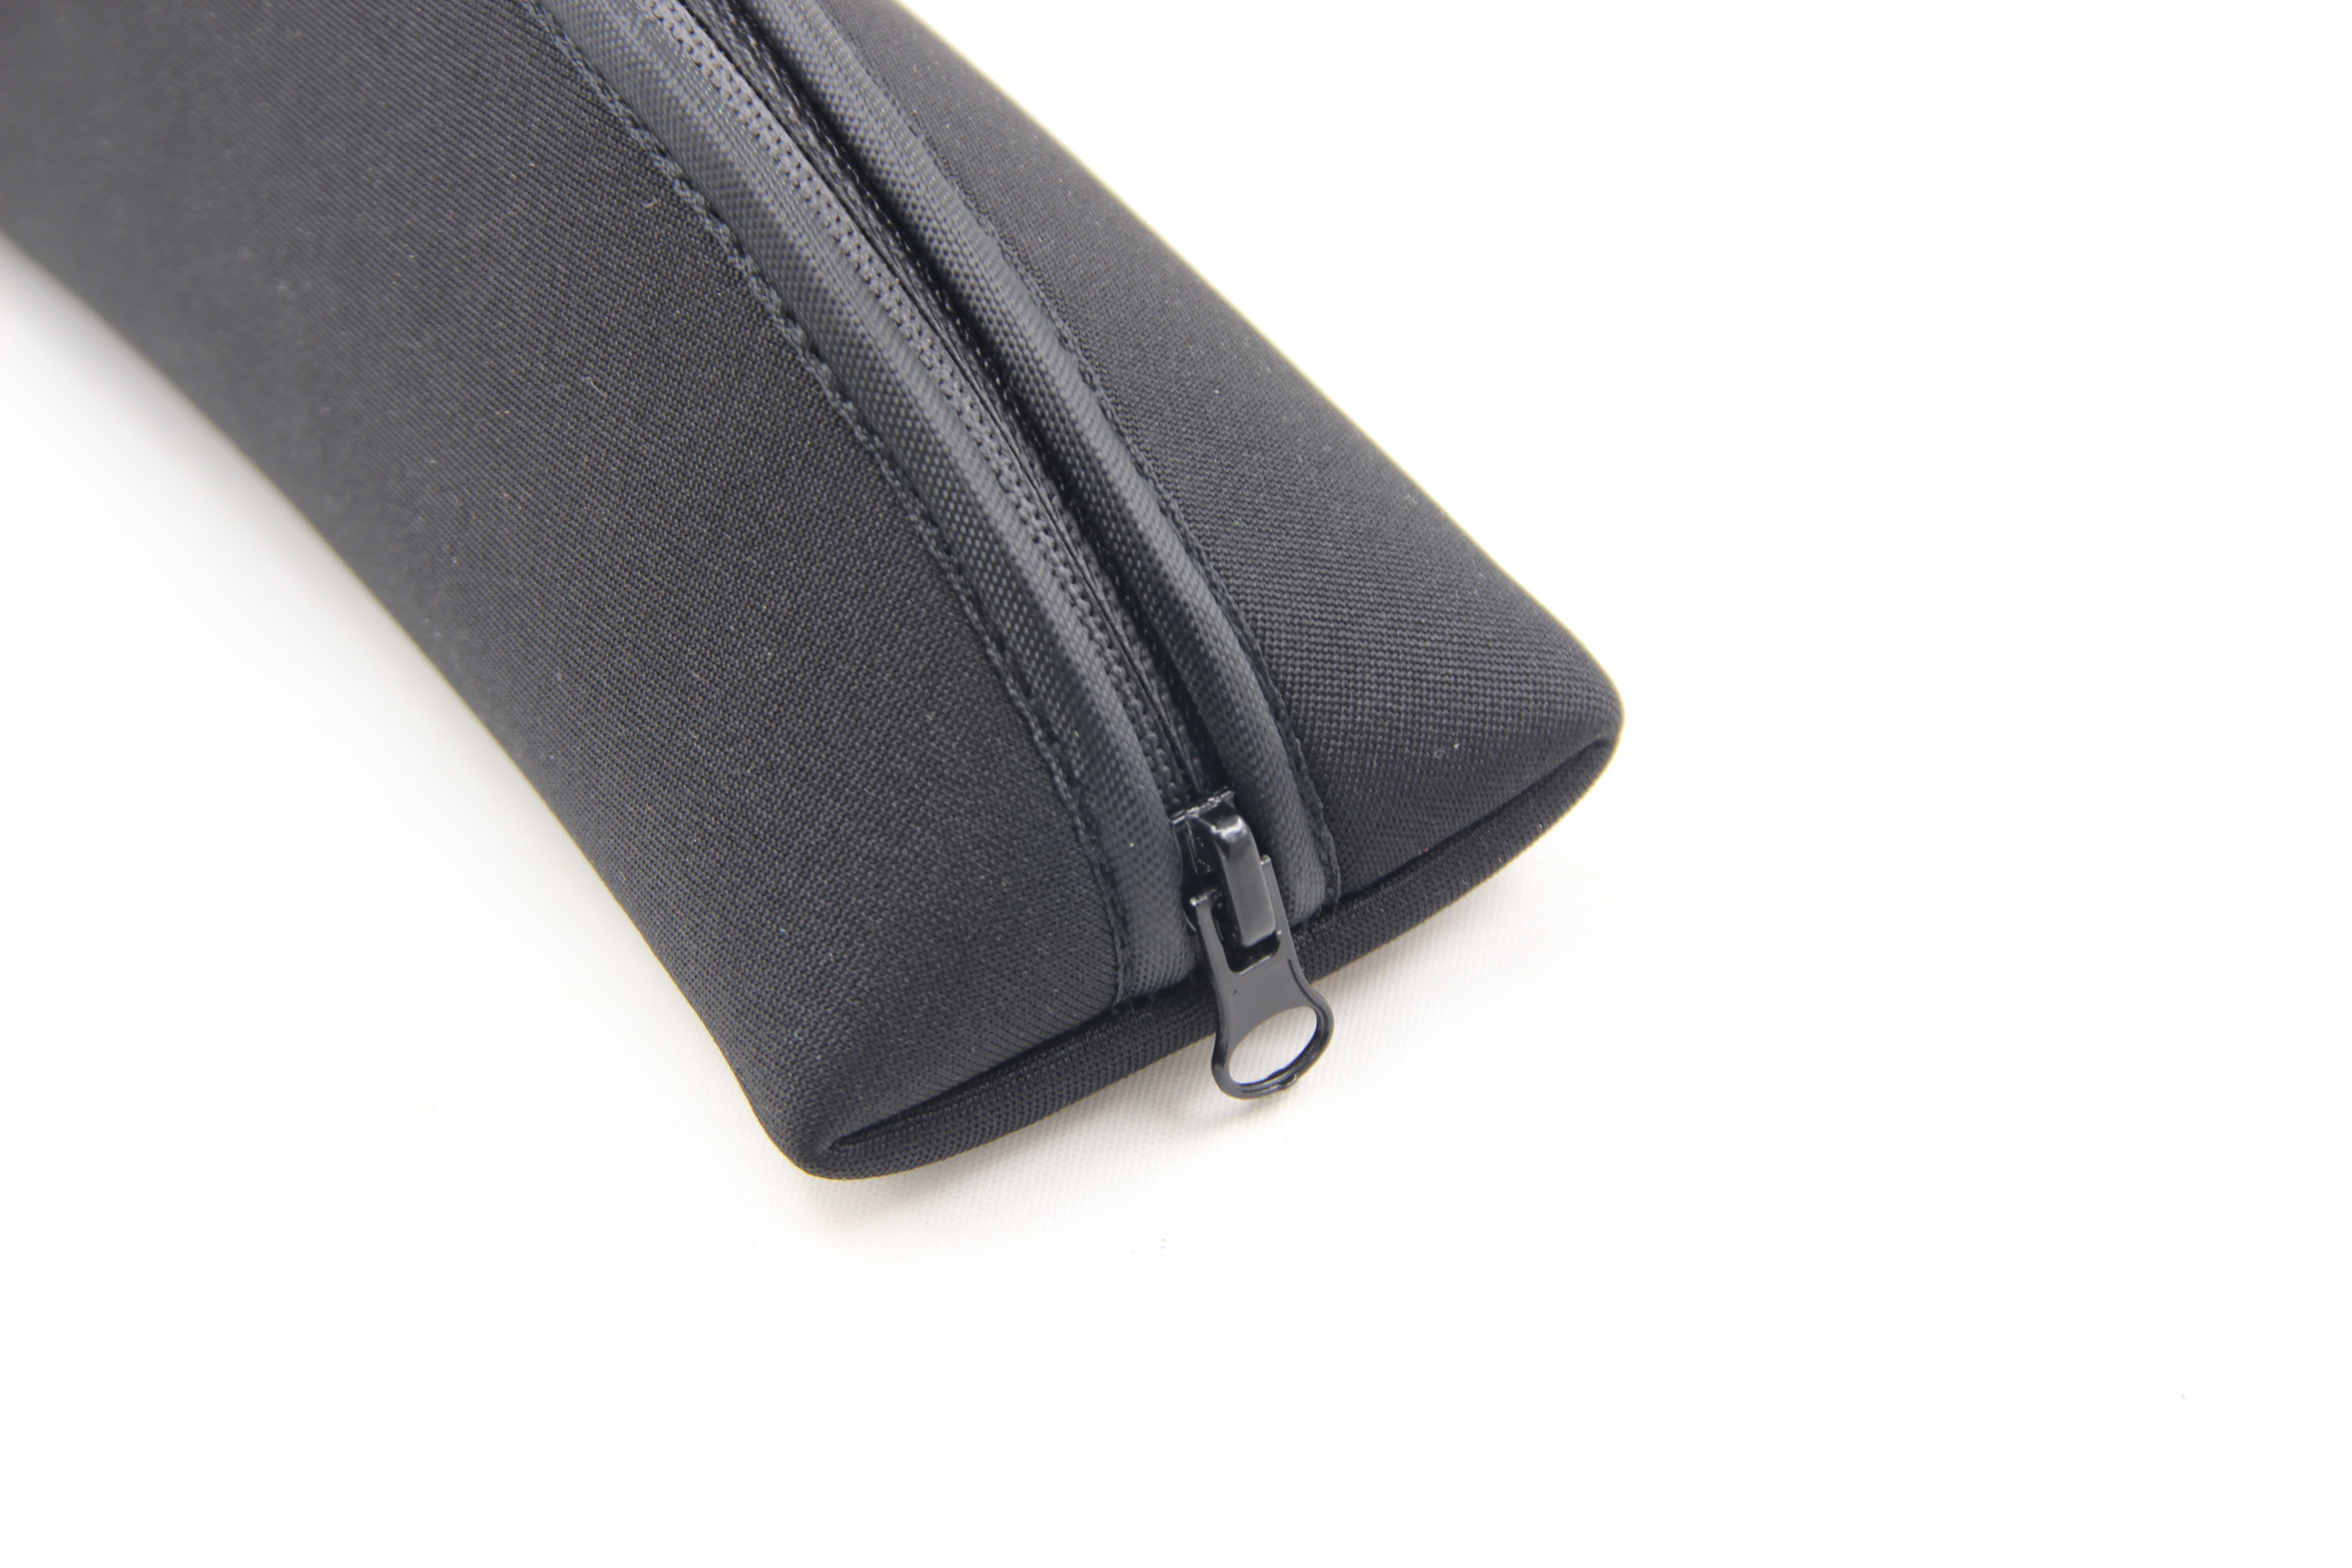 Floating popular black soft pouch sunglasses case neoprene bag